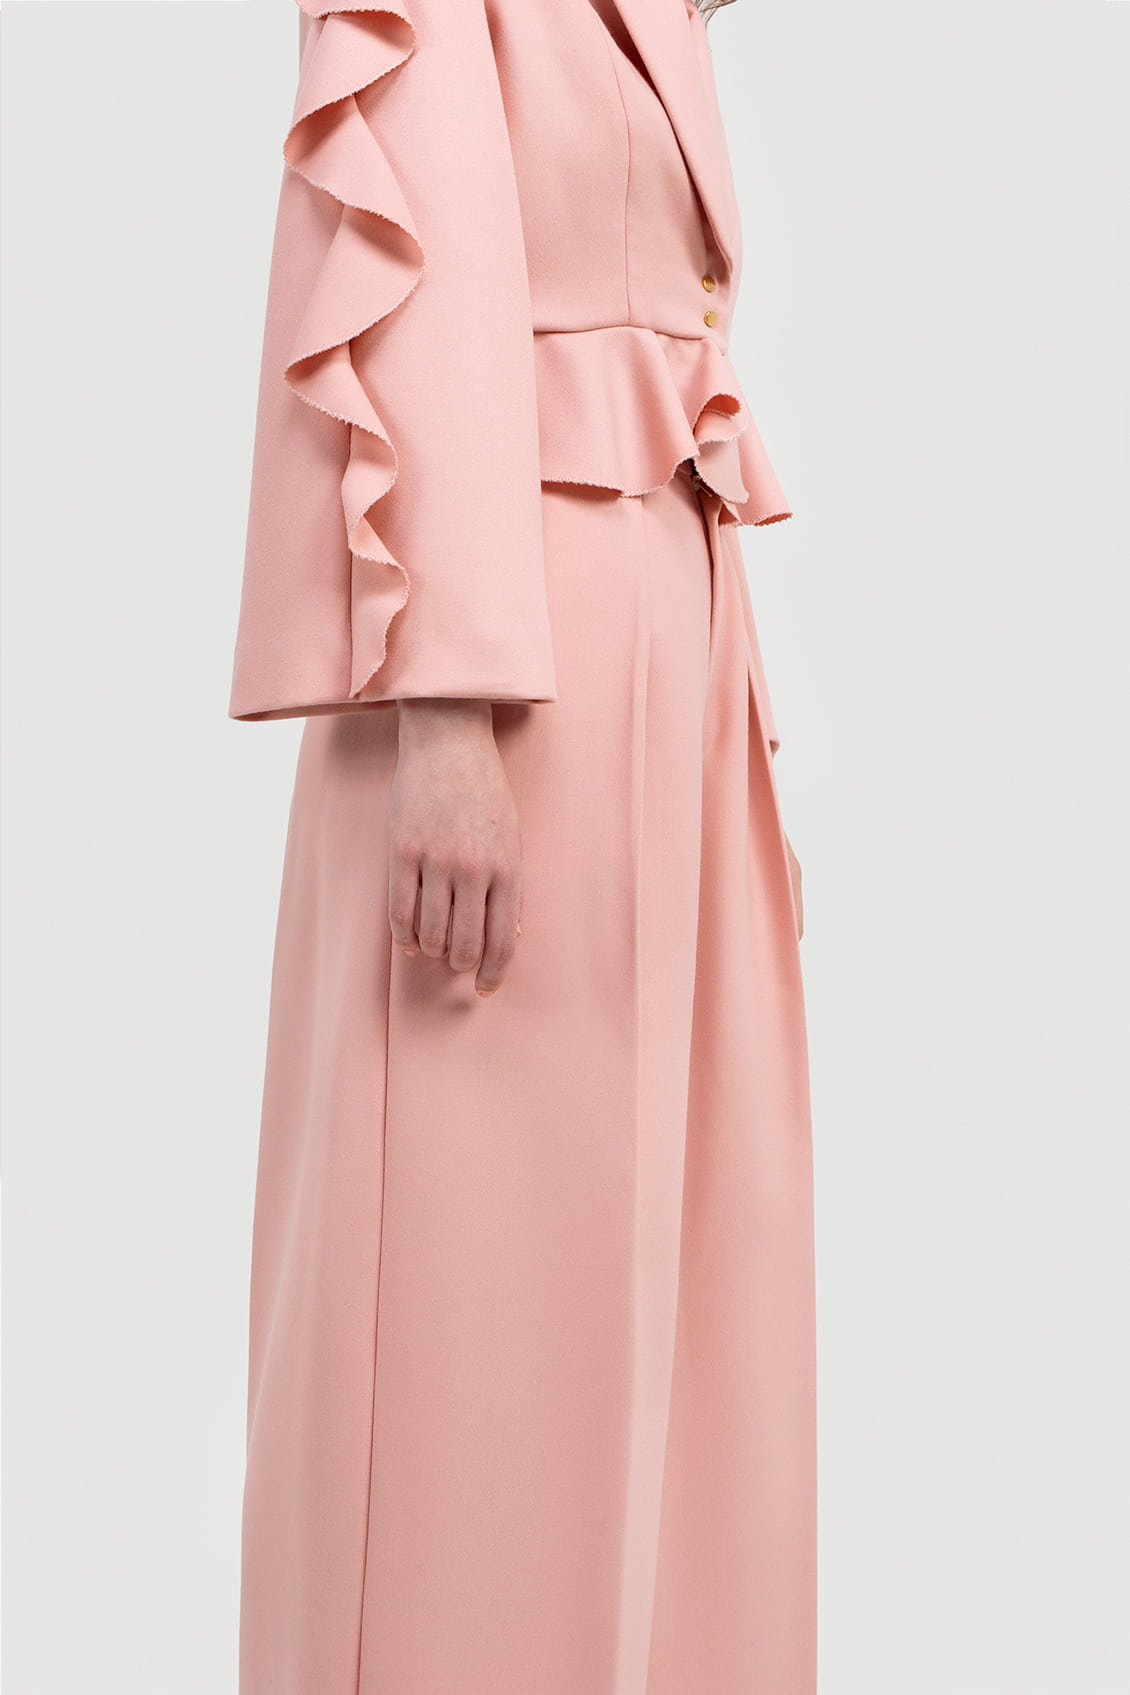 VALDONE Au - Wide sleeve shoulder-to-hem ruffle detail of the women's tailored suit jacket ALYSA in baby pink fine wool fabric.